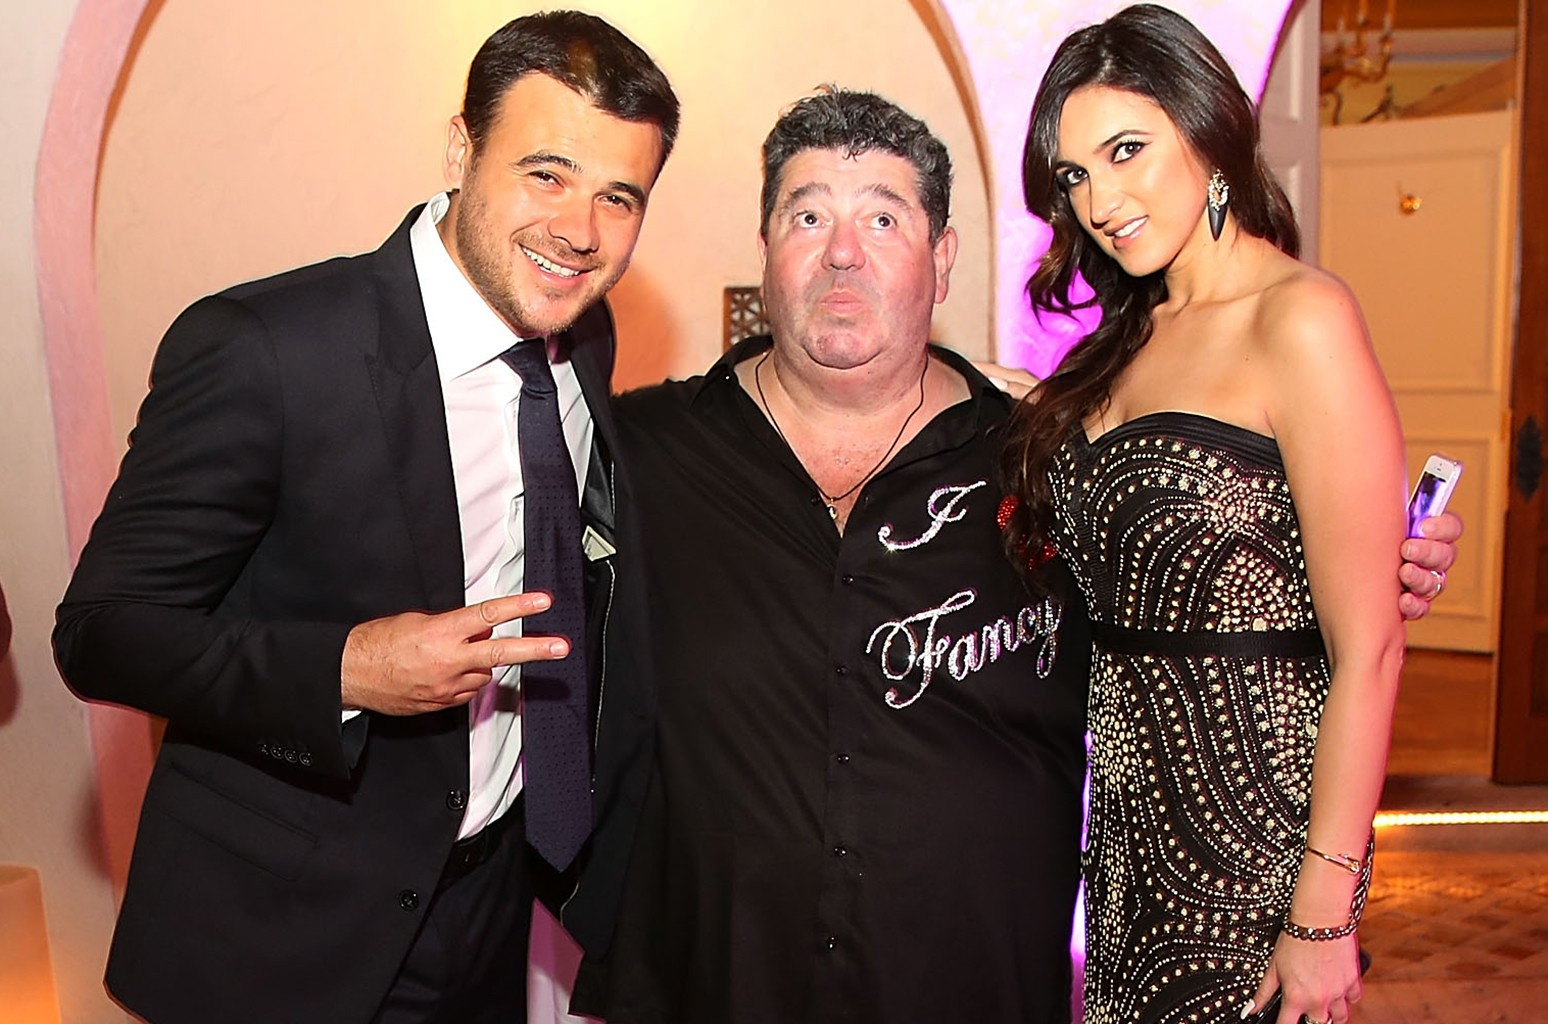 Emin Agalarov, Rob Goldstone and Sheila Agalarova at Barton G on Dec. 31, 2014 in Miami Beach, Fla.